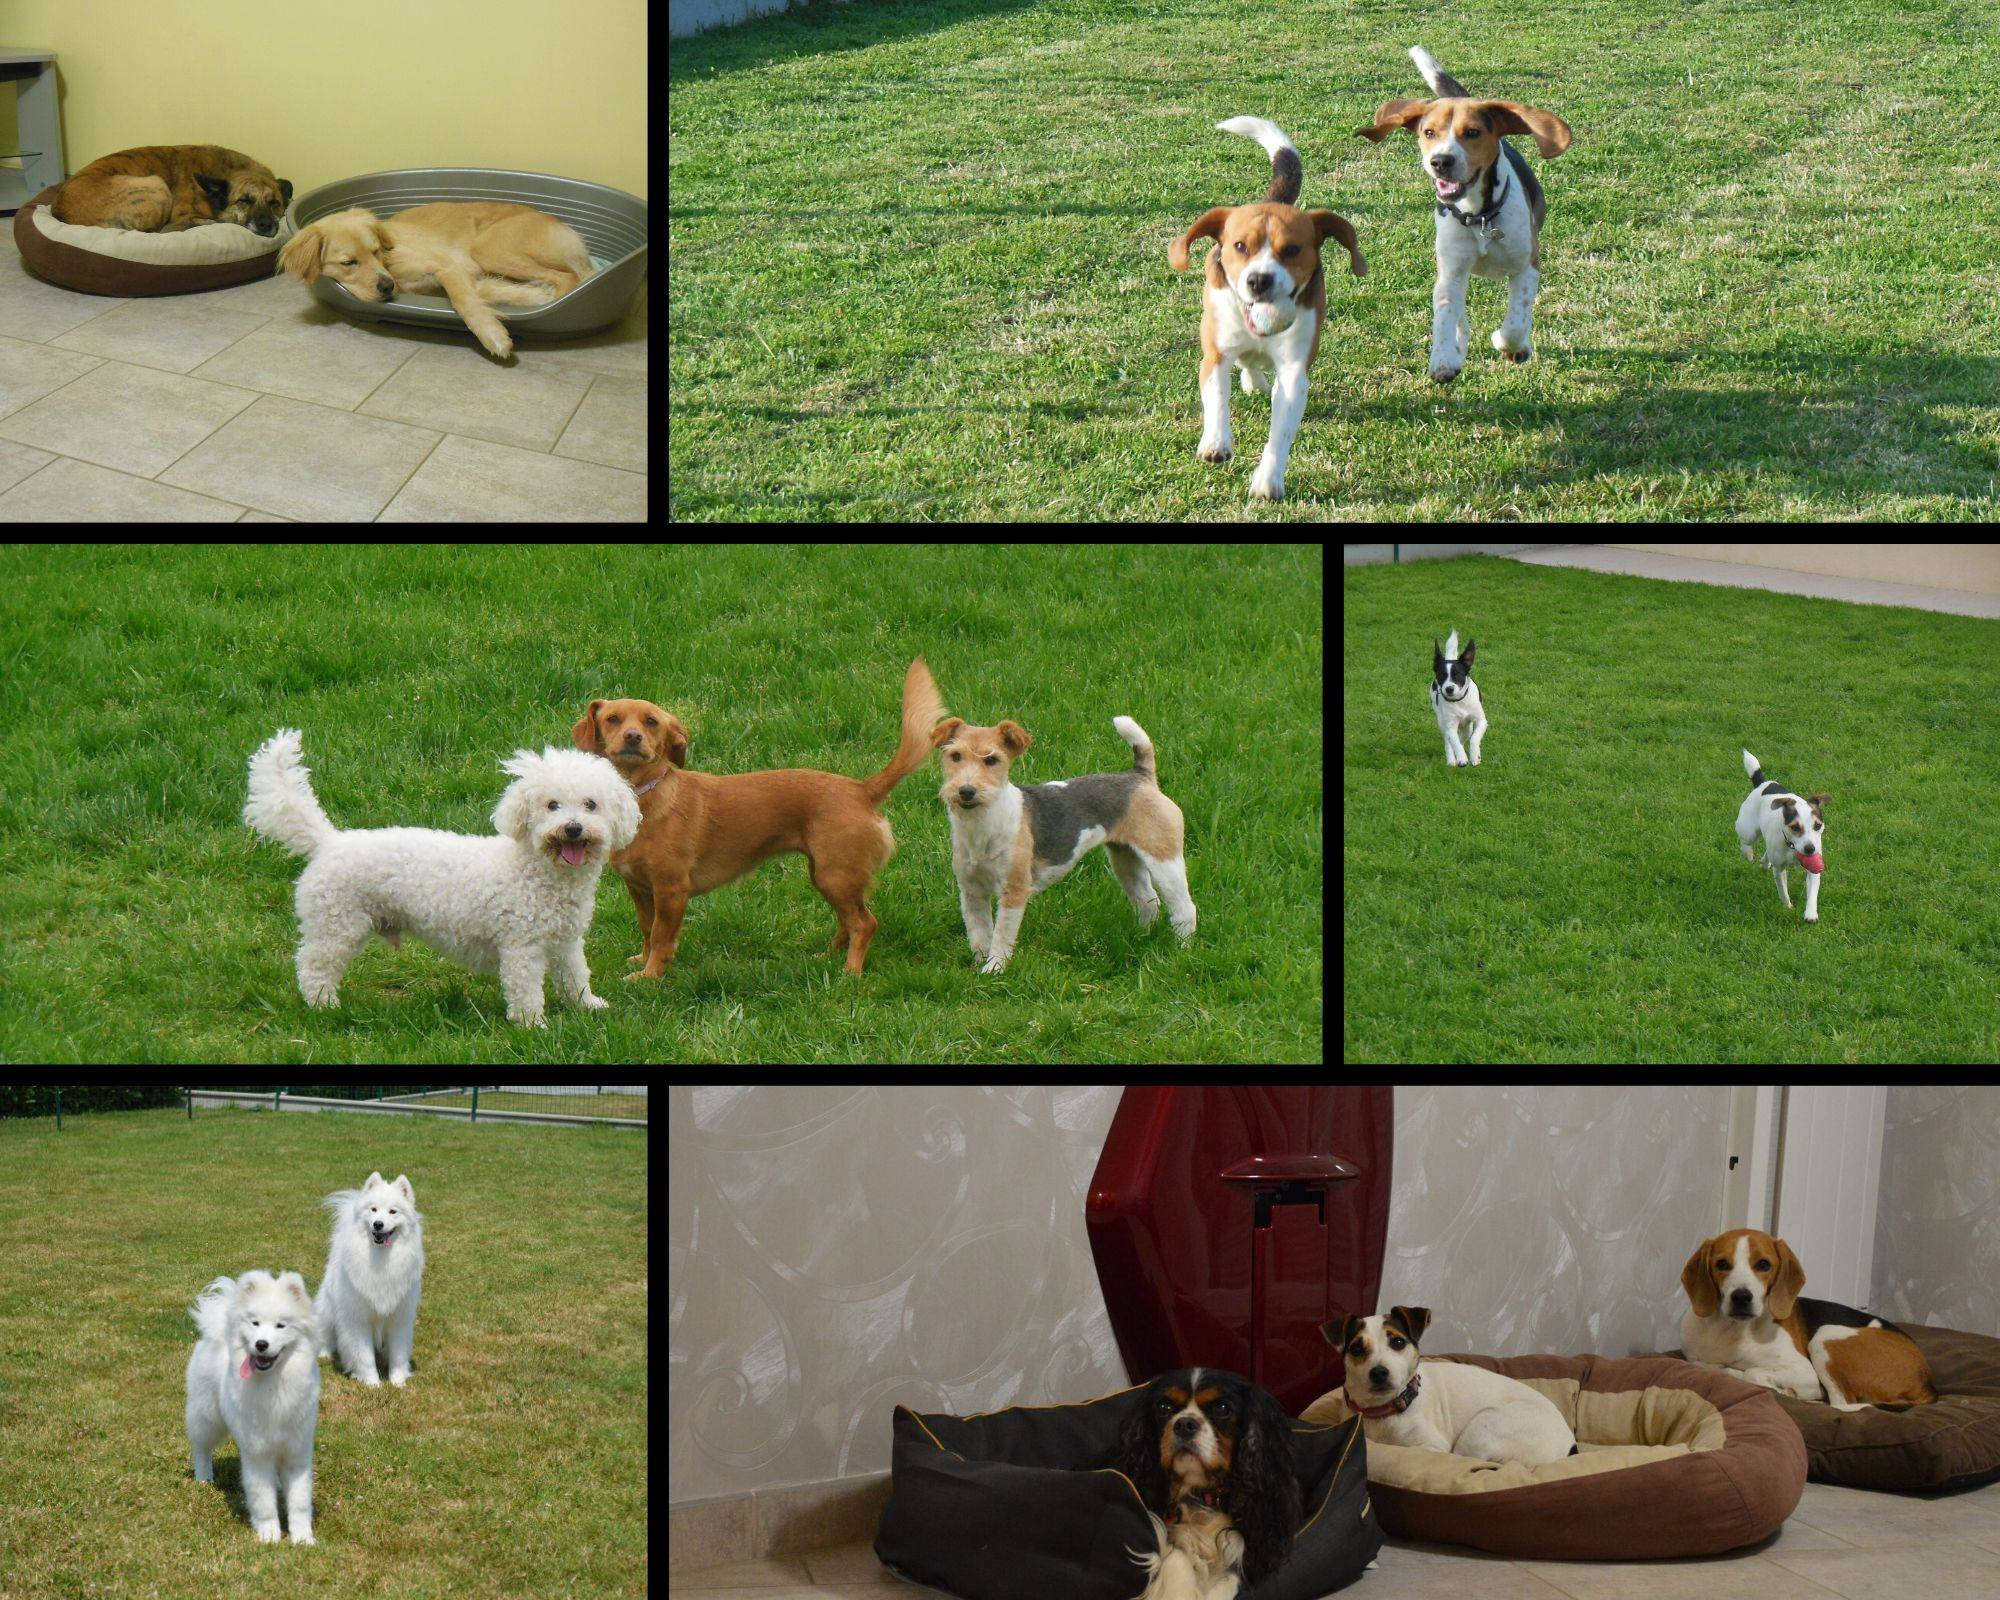 chiens en pension canine